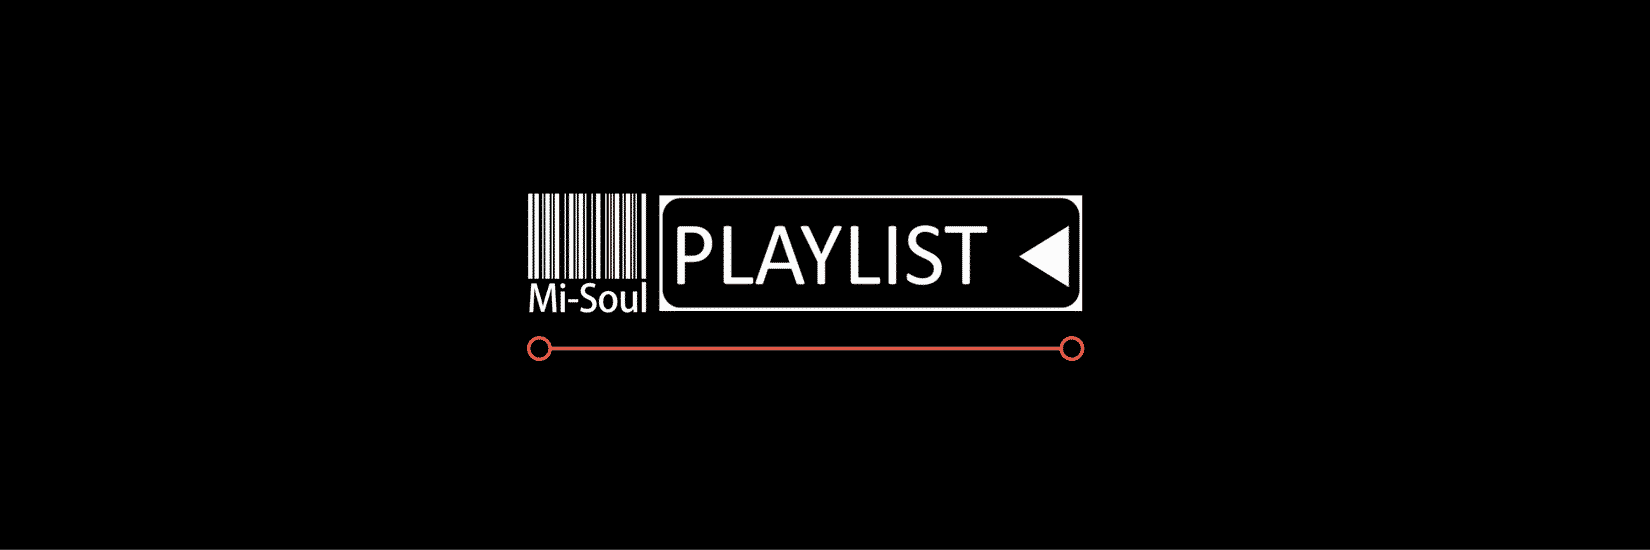 mi-soul radio playilst